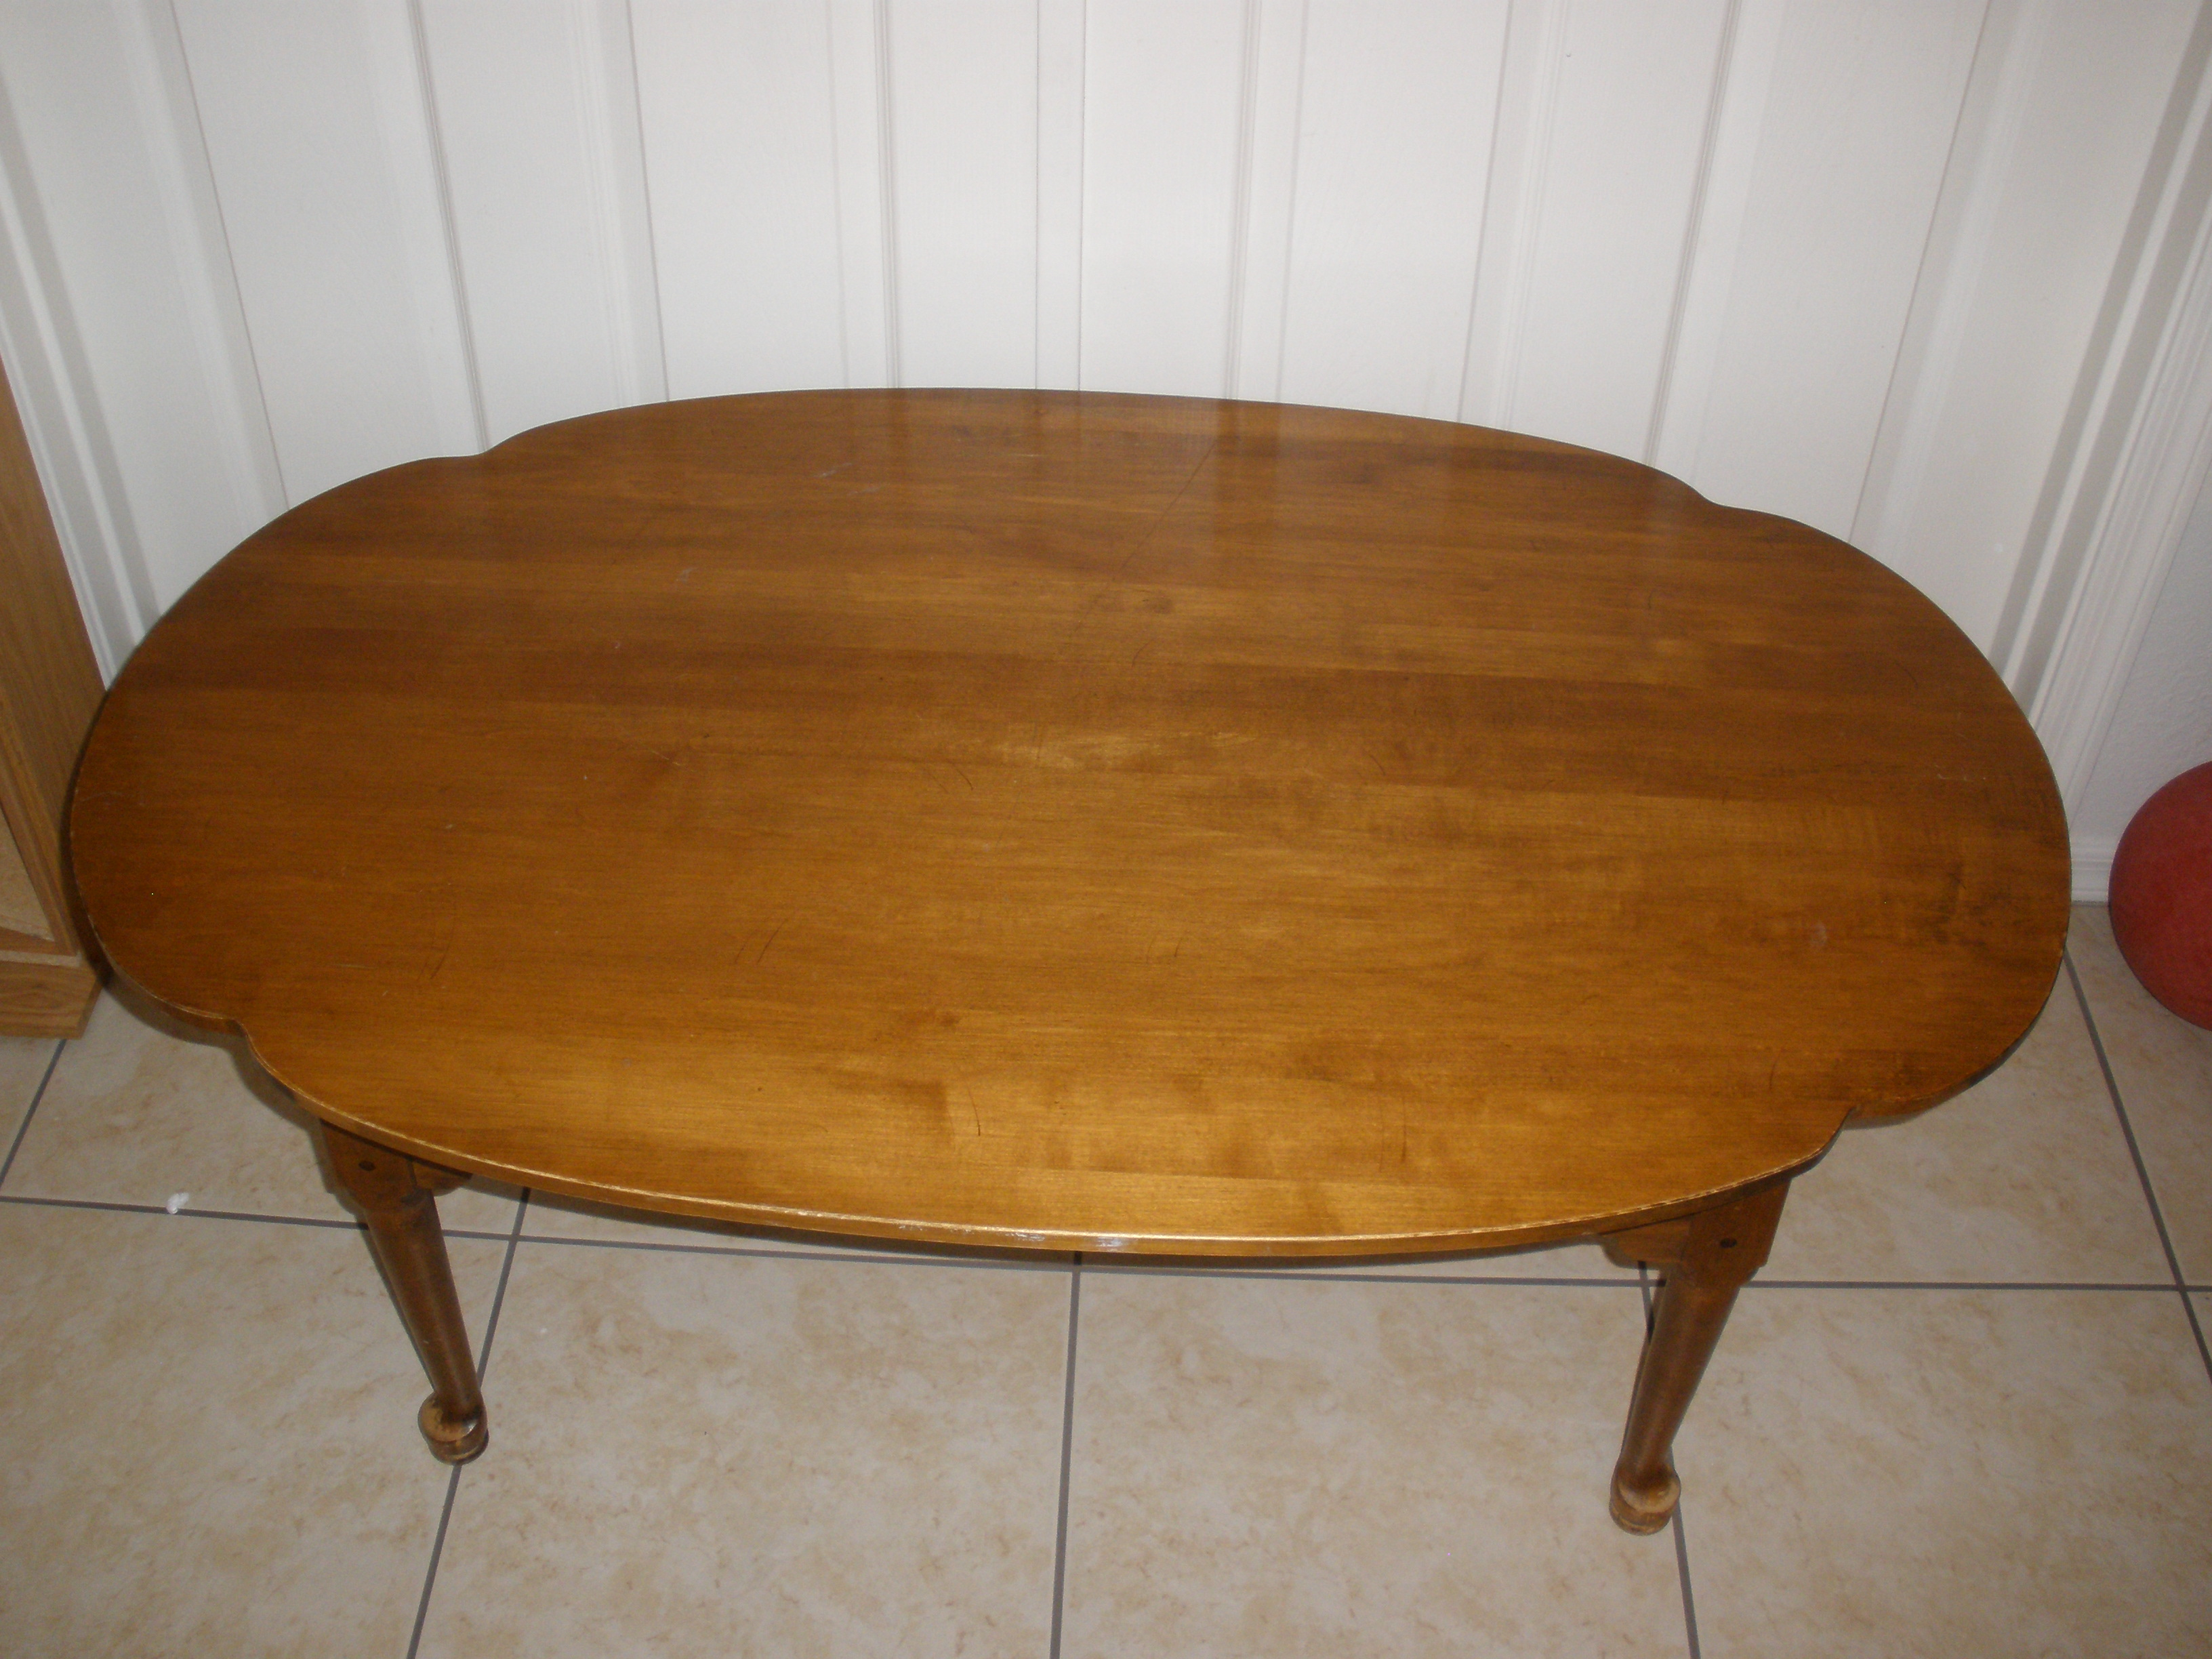 Superb Ethan Allen Oval Coffee Table Rascalartsnyc